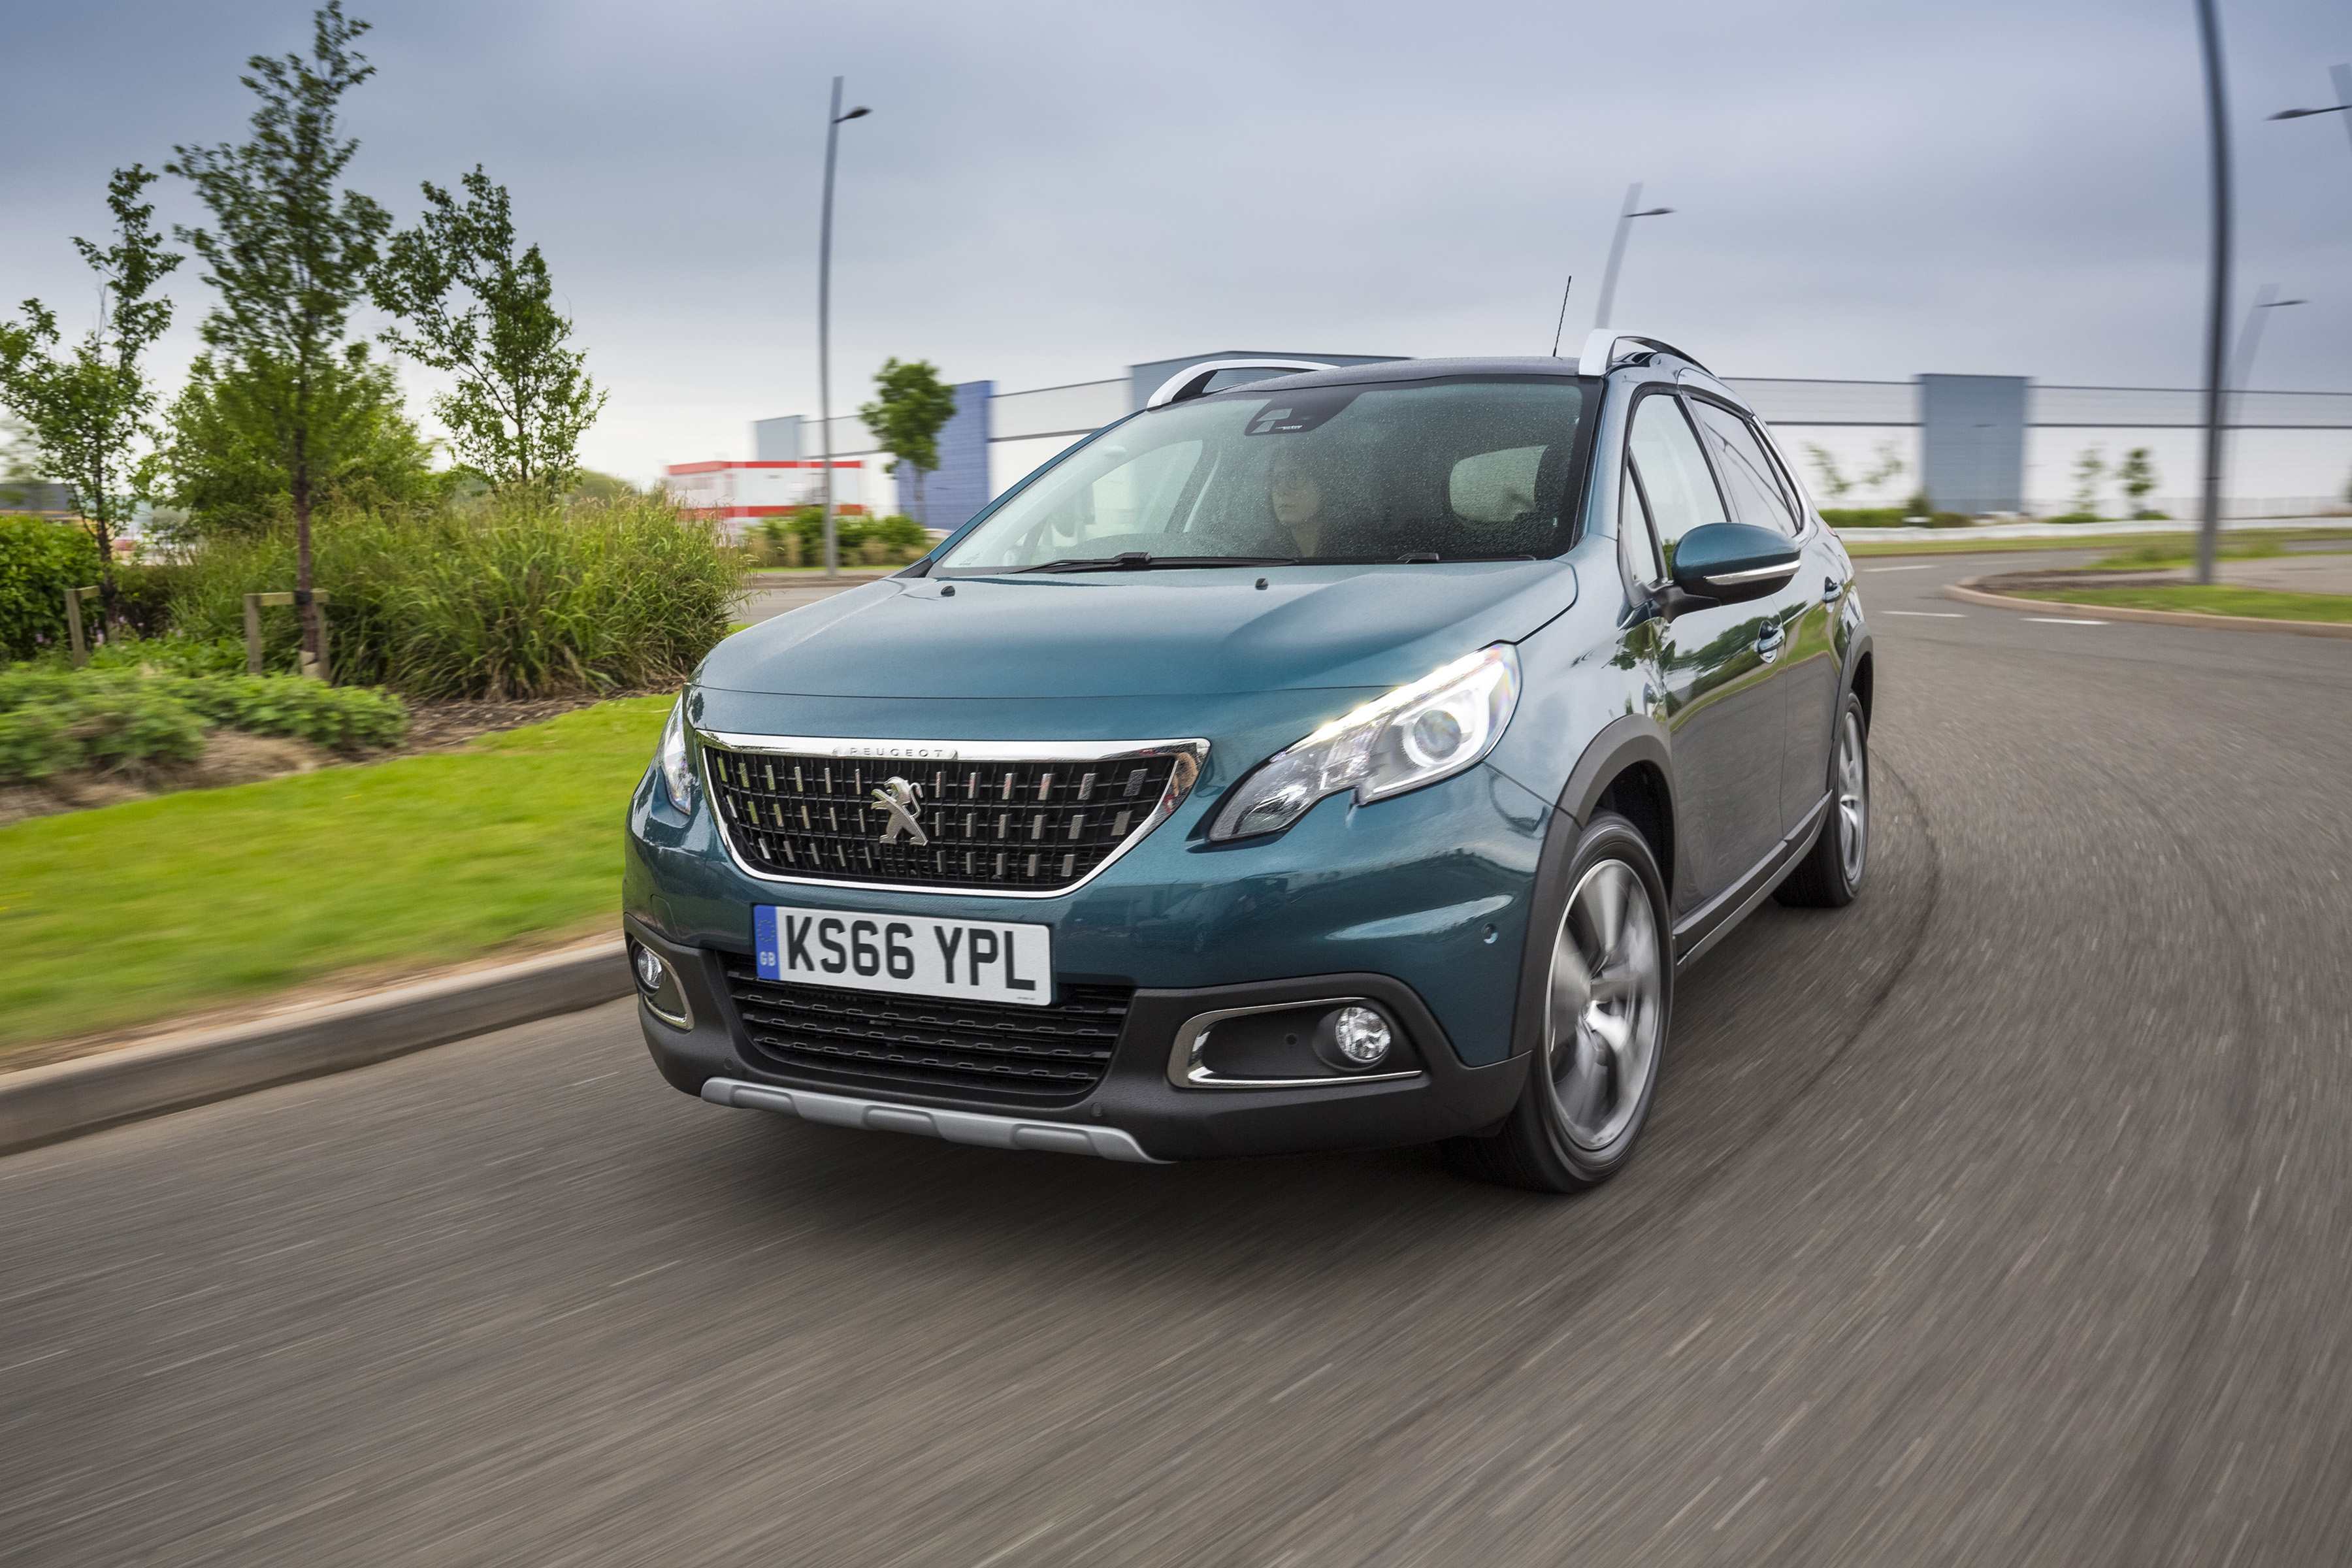 new peugeot 2008 suv the popular and versatile suv offers even more attractive features for. Black Bedroom Furniture Sets. Home Design Ideas